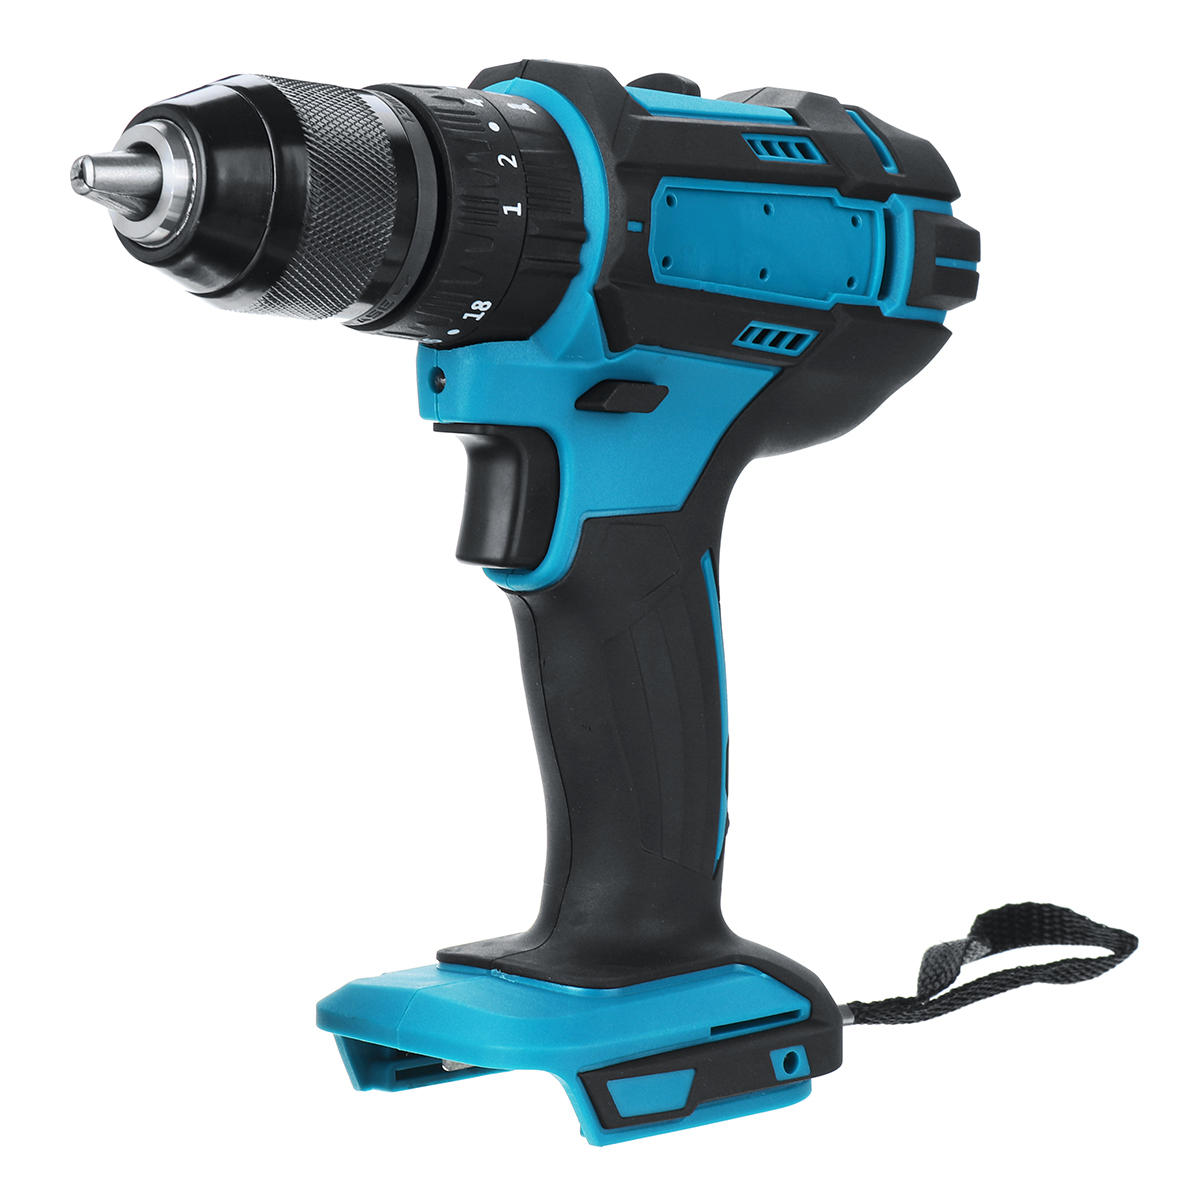 10mm Chuck Brushless Impact Drill 350N.m Cordless Electric Drill For Makita 18V Battery 4000RPM LED Light Power Drills - 1